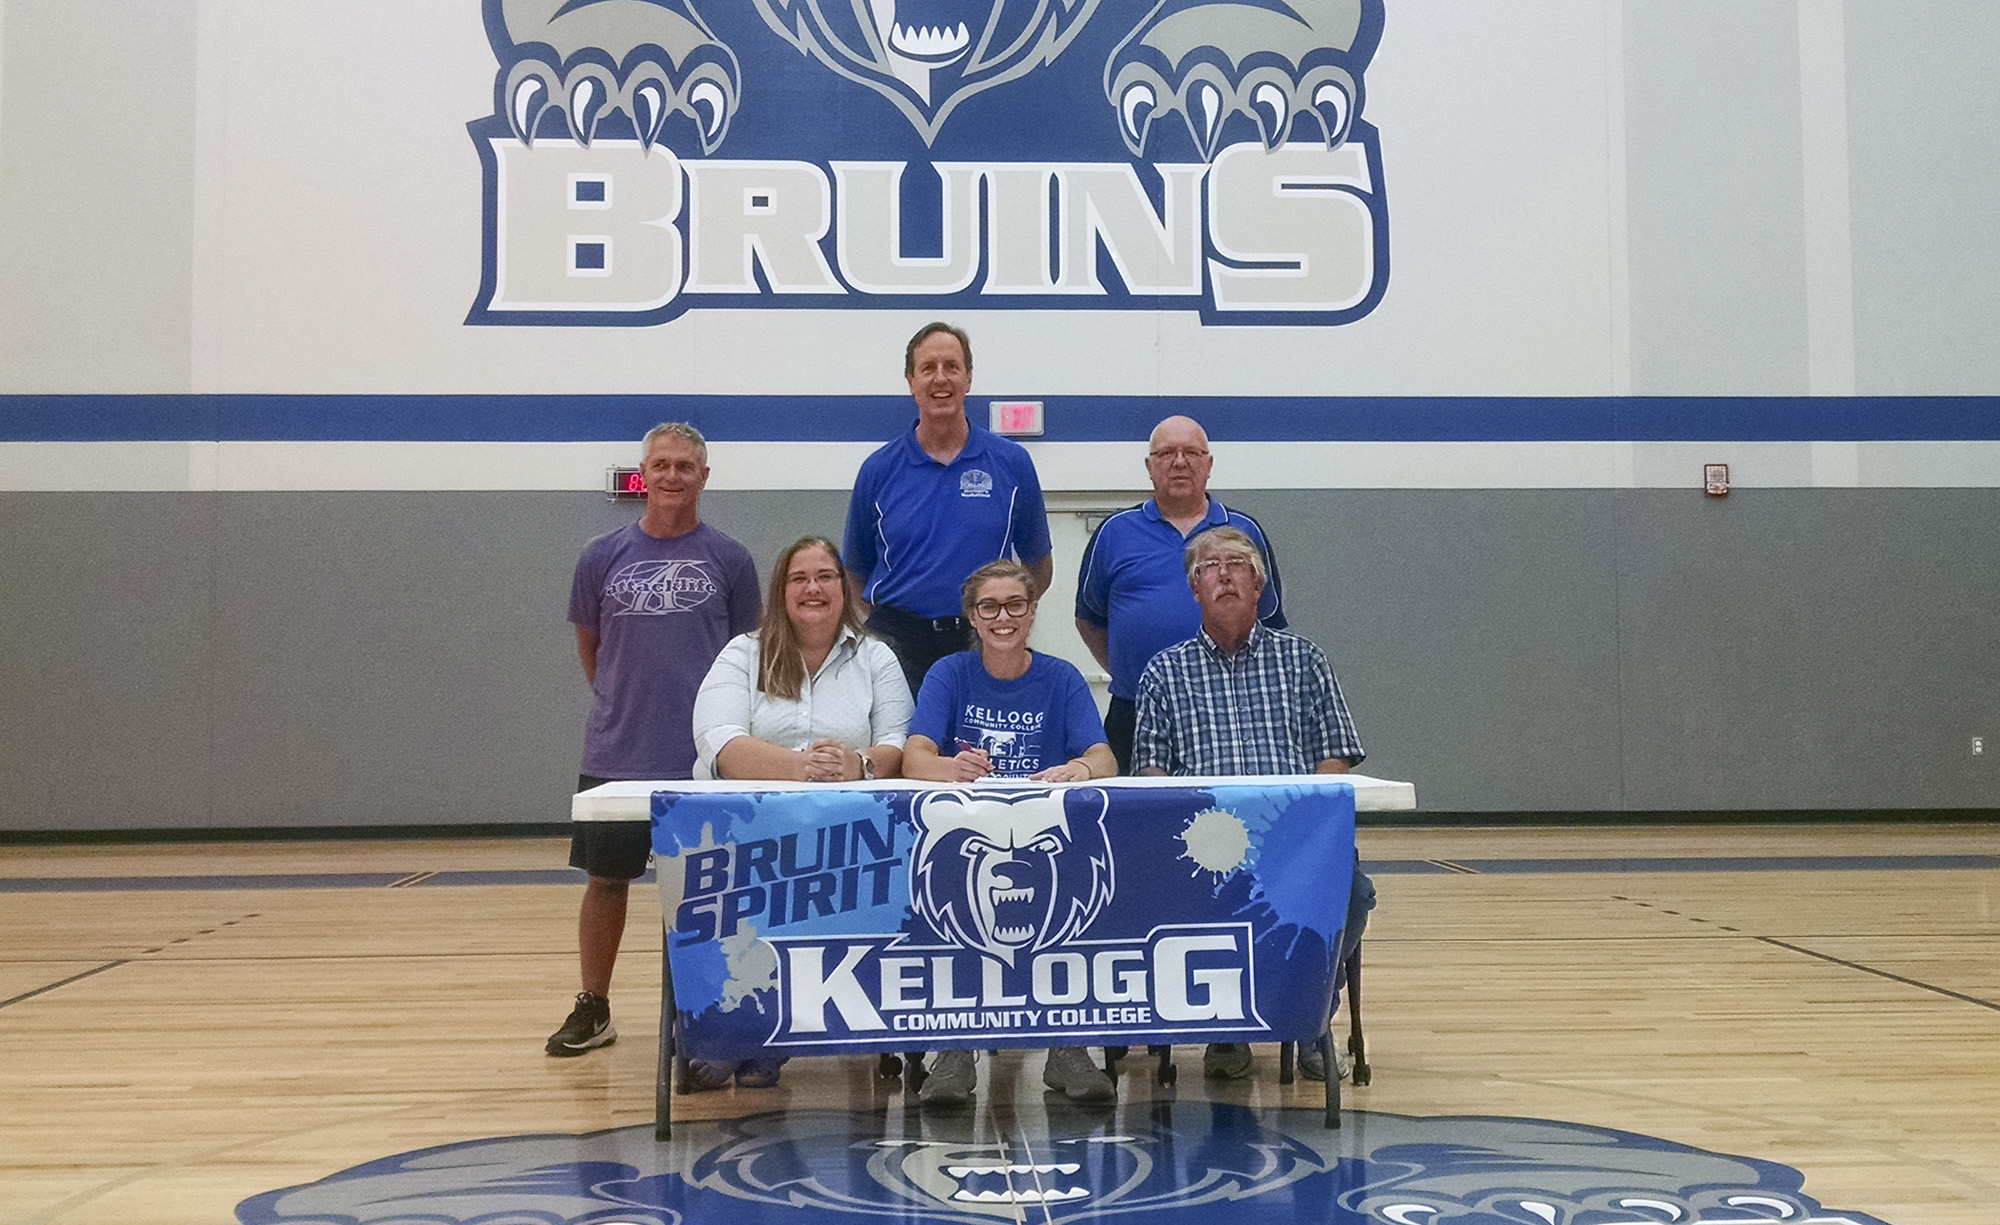 Pictured in the above athletic signing photo, in the front row, from left to right, are Angela Walton (mother), Morgan Walton and Larry Walton (father). In the back row, from left to right, are Attack Basketball Coach Alton Tucker, KCC Head Women's Basketball Coach Dic Doumanian and KCC Assistant Women's Basketball Coach Ray Miller.